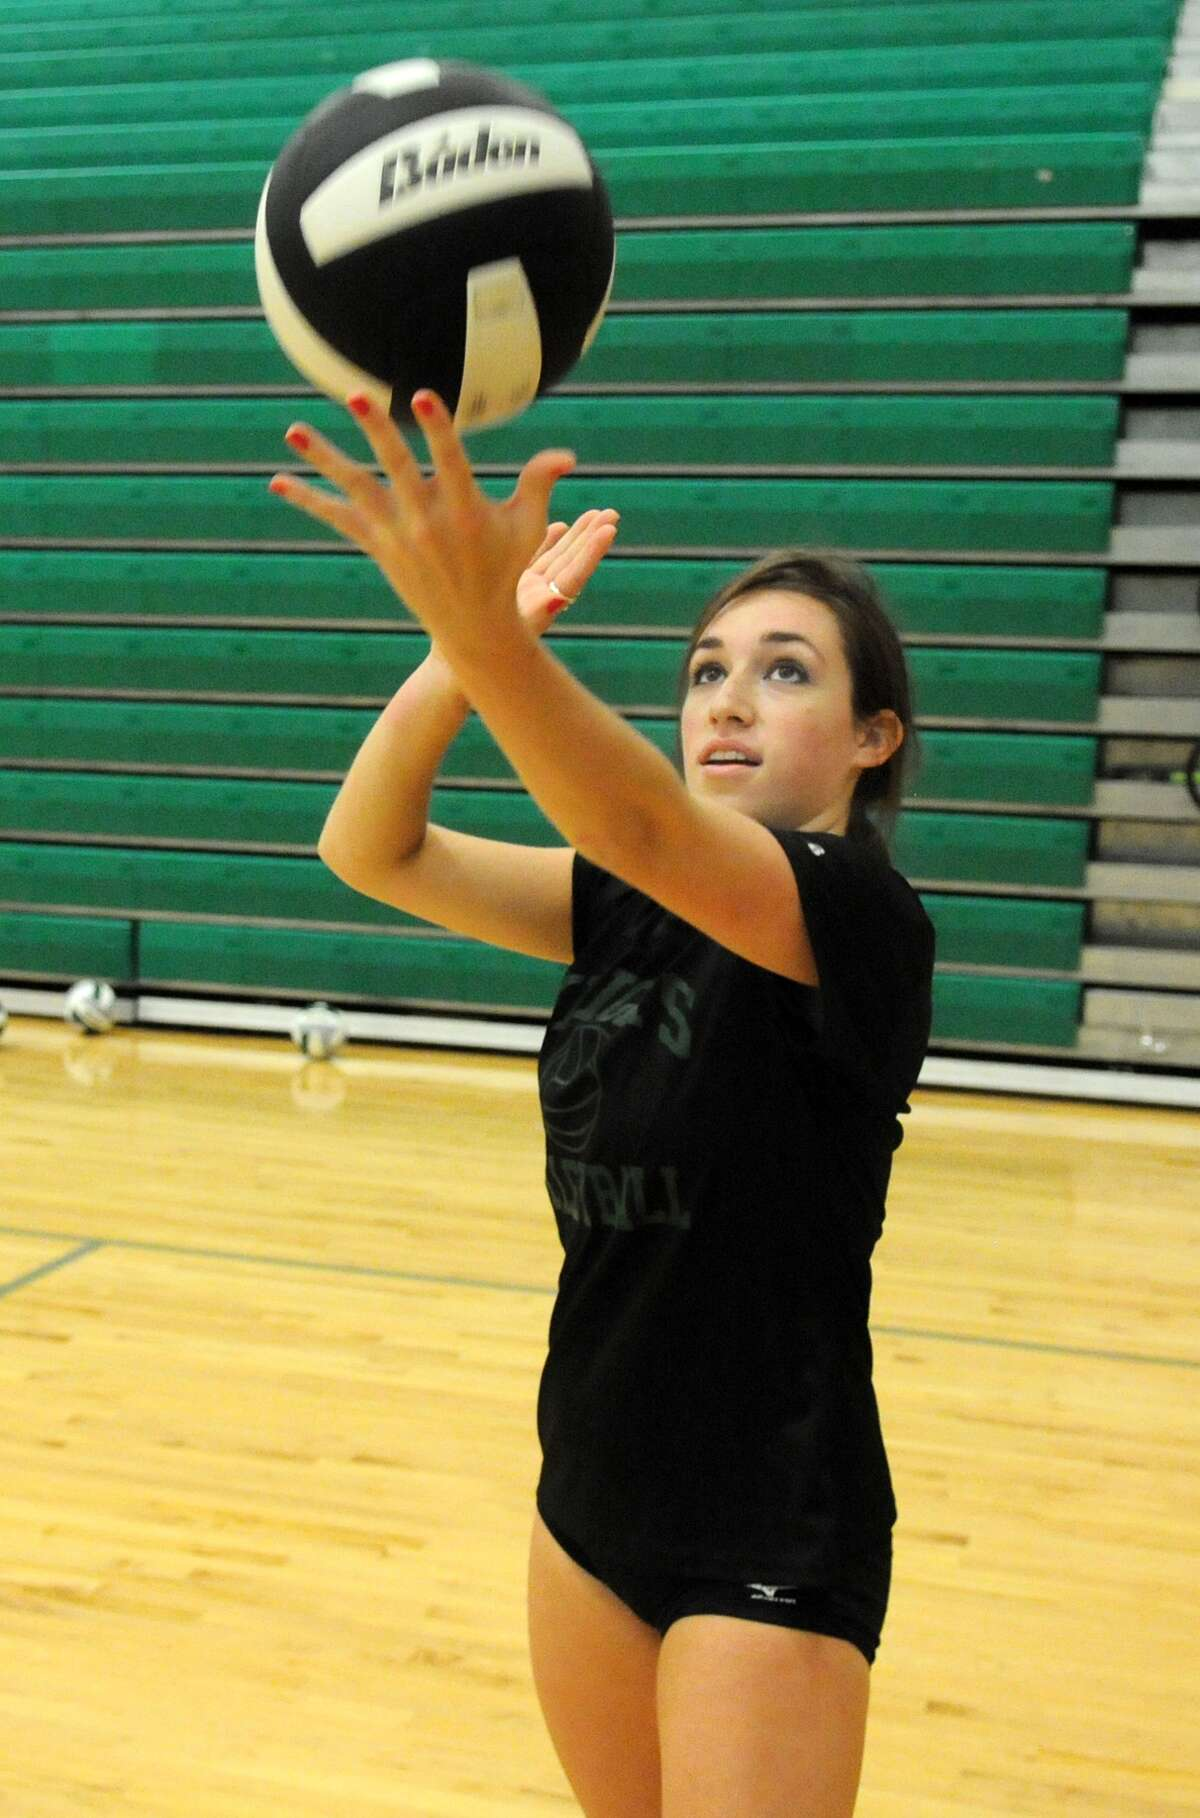 Clear Falls senior libero Morgan St. Germain perfects her serving technique during a recent practice.